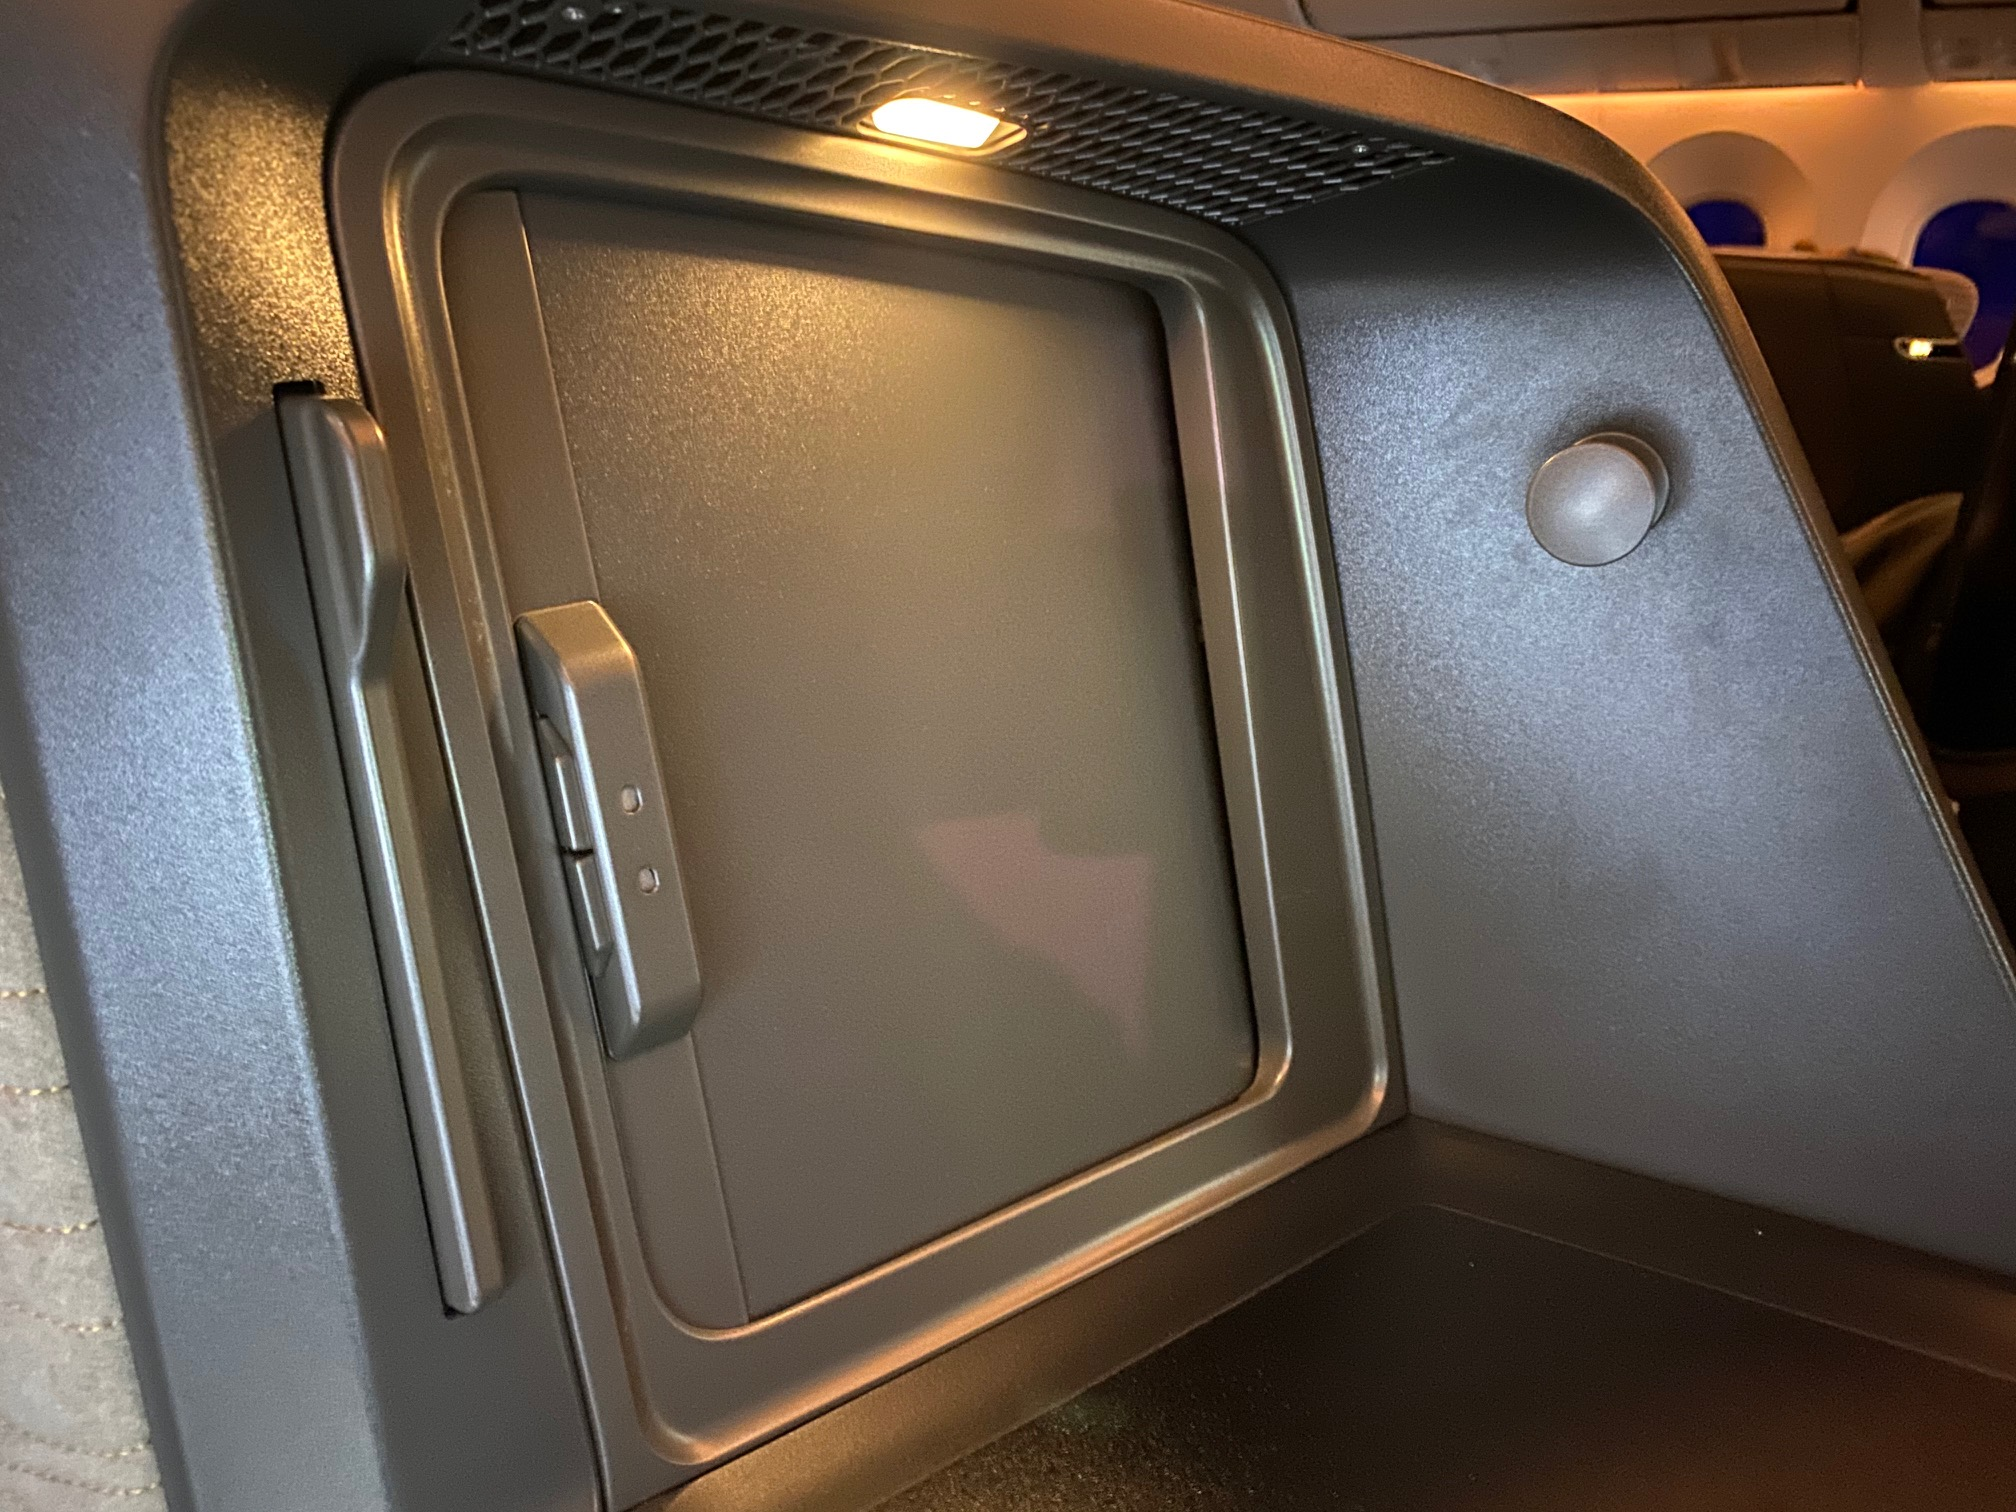 Turkish Airlines 787-9 Business Class Seat Storage Space